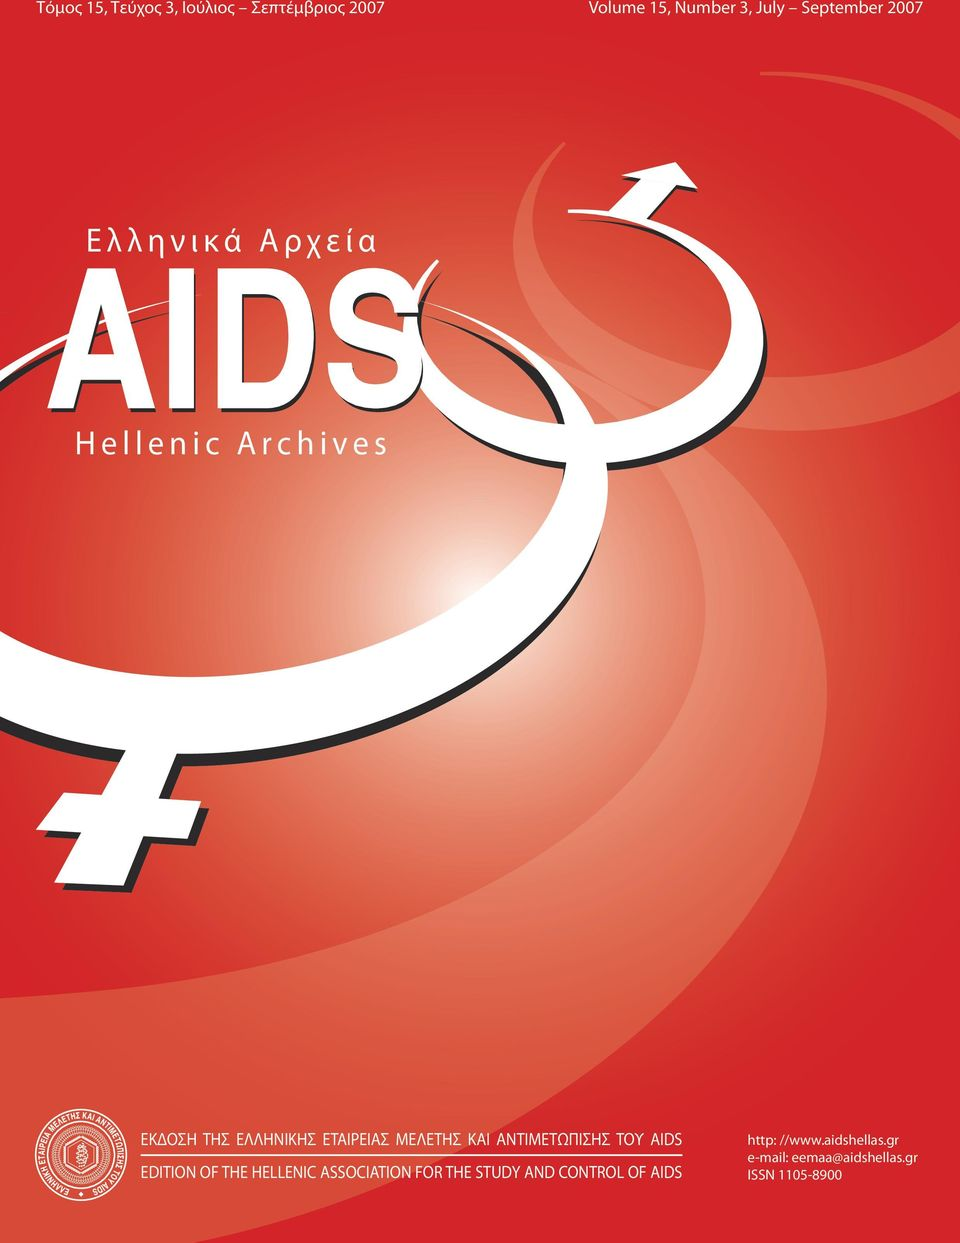 ΚΑΙ ΑΝΤΙΜΕΤΩΠΙΣΗΣ ΤΟΥ AIDS EDITION OF THE HELLENIC ASSOCIATION FOR THE STUDY AND